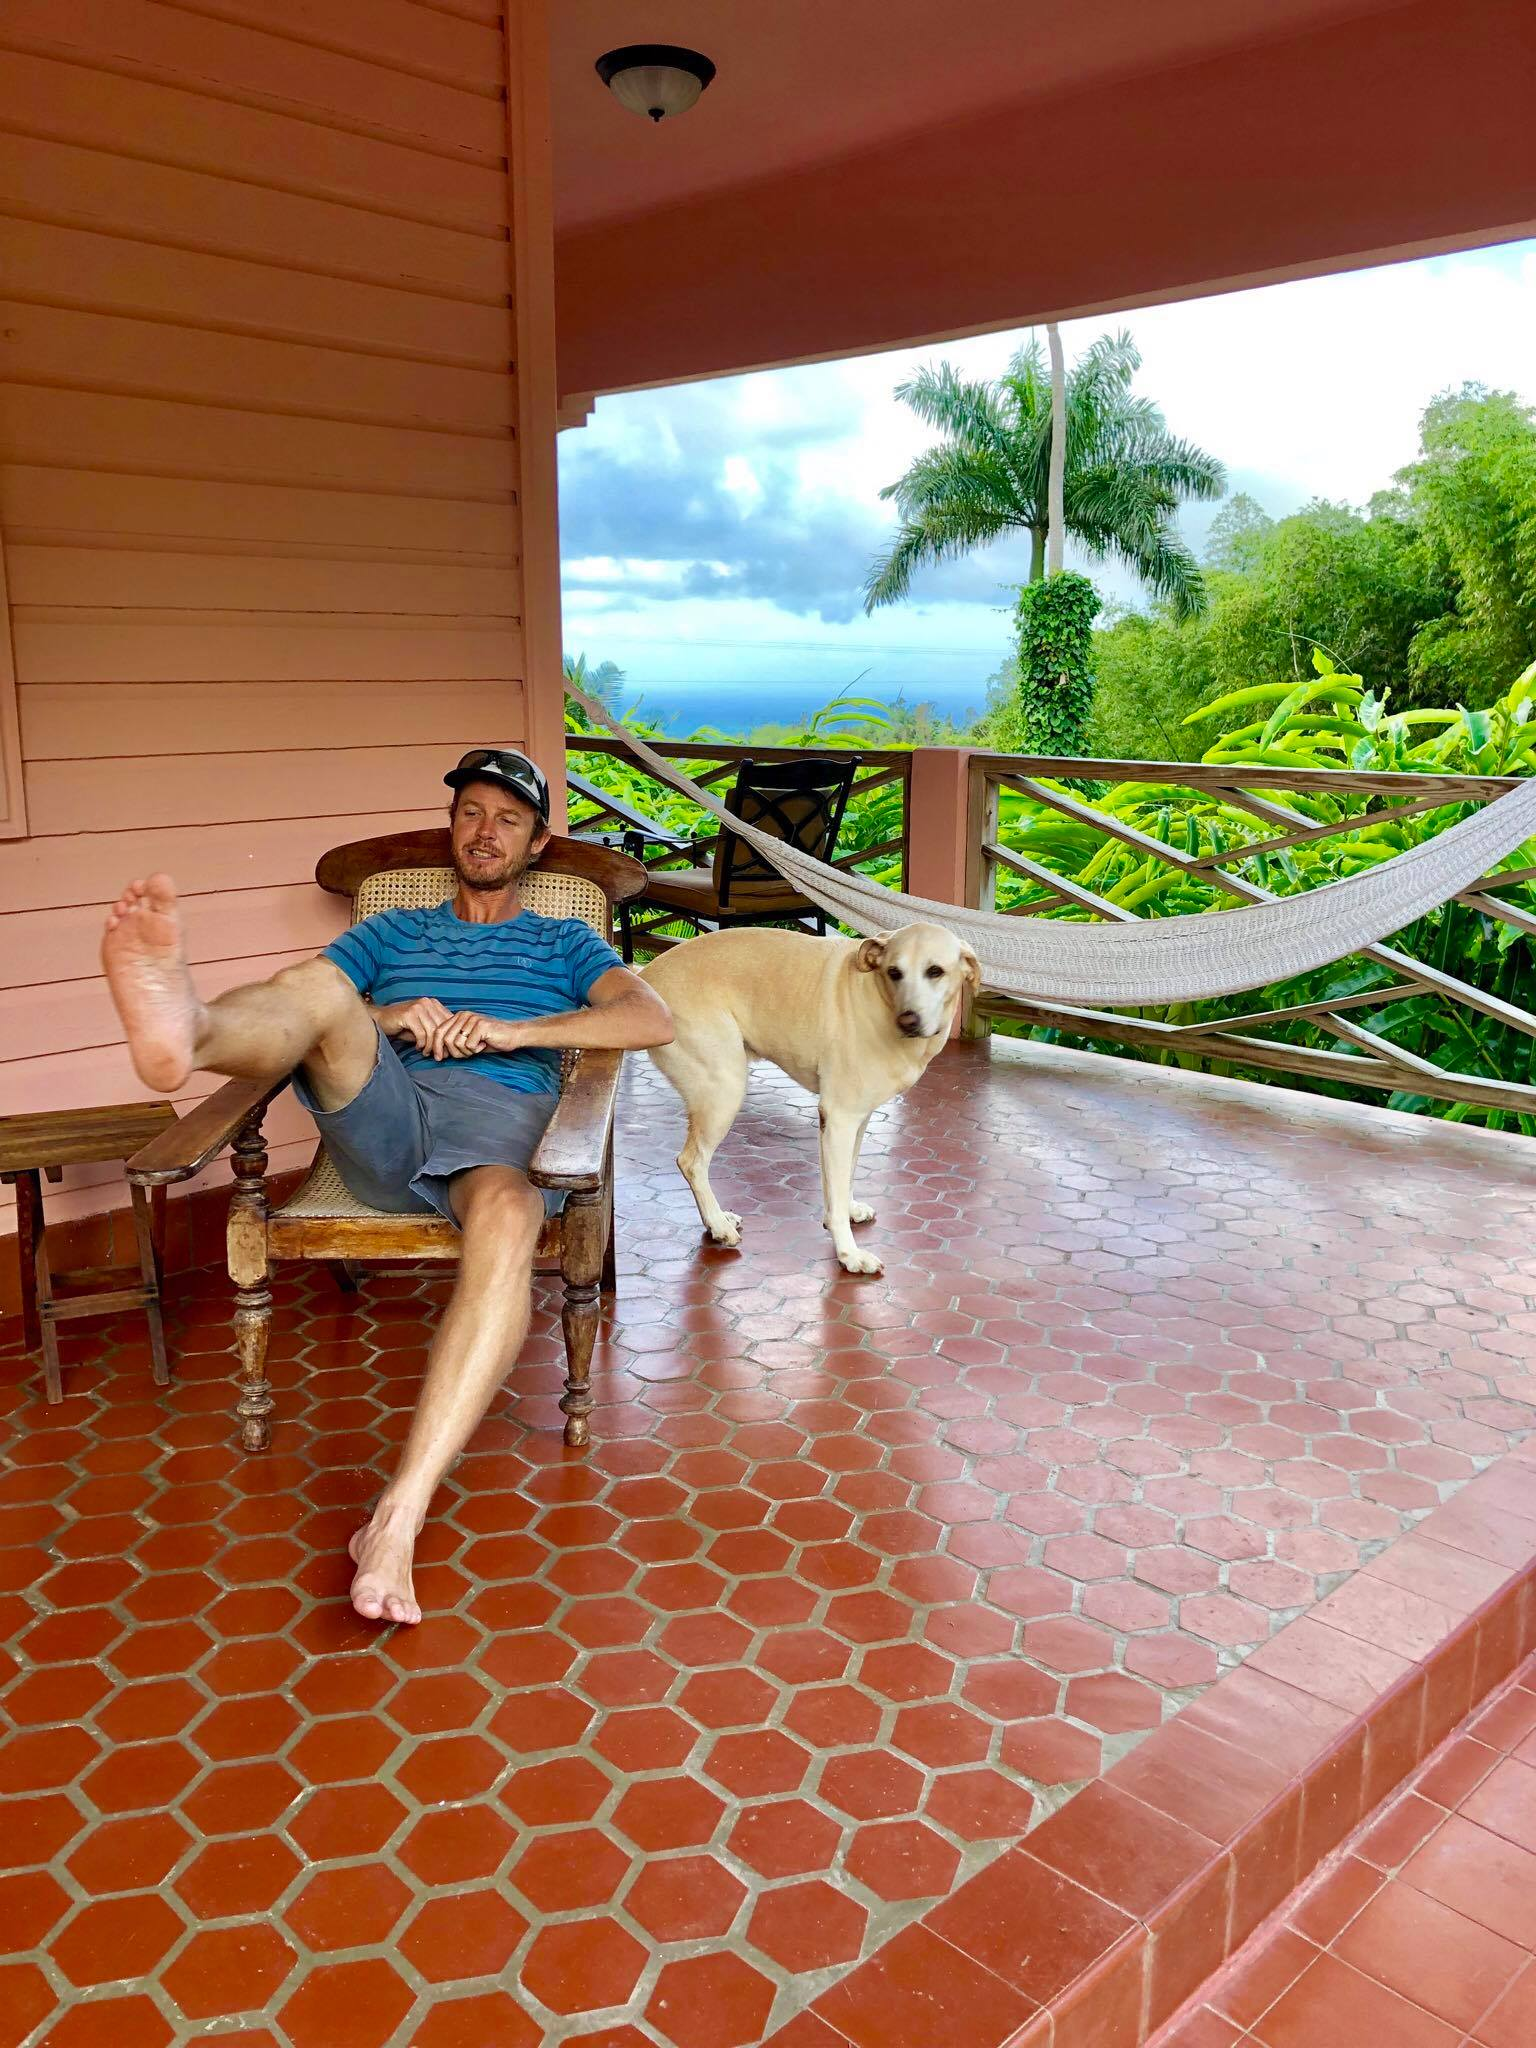 Life On The Road Day 10 Another day hiking in El Yunque National Forest and Eating BBQ at the malecon in Naguabo Promenade23.jpg